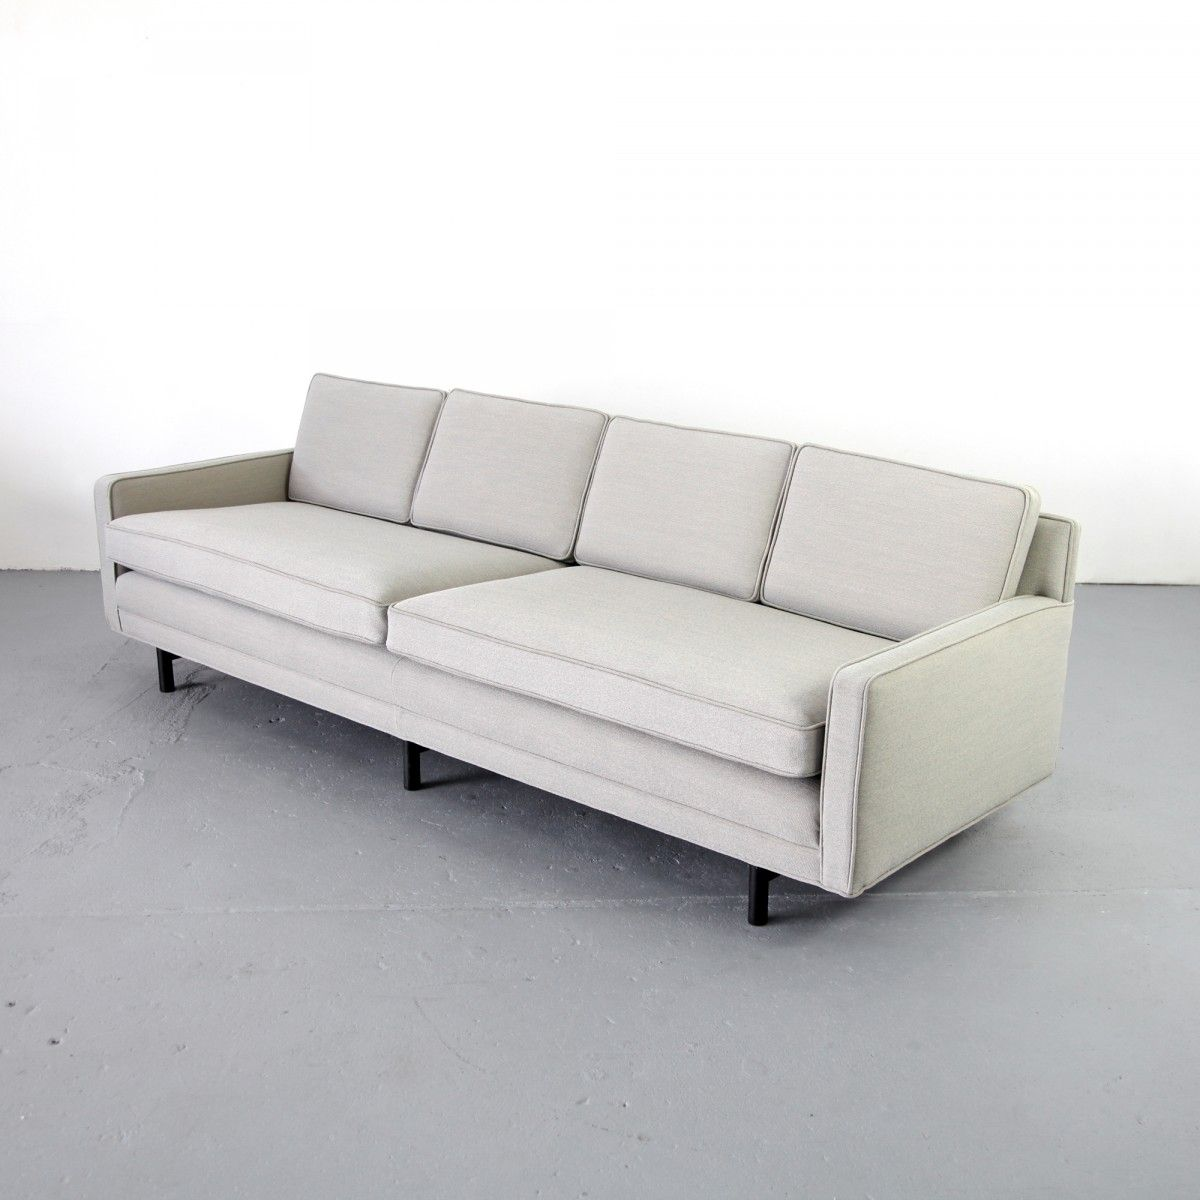 4 Seater Sofa By Paul McCobb For Directional